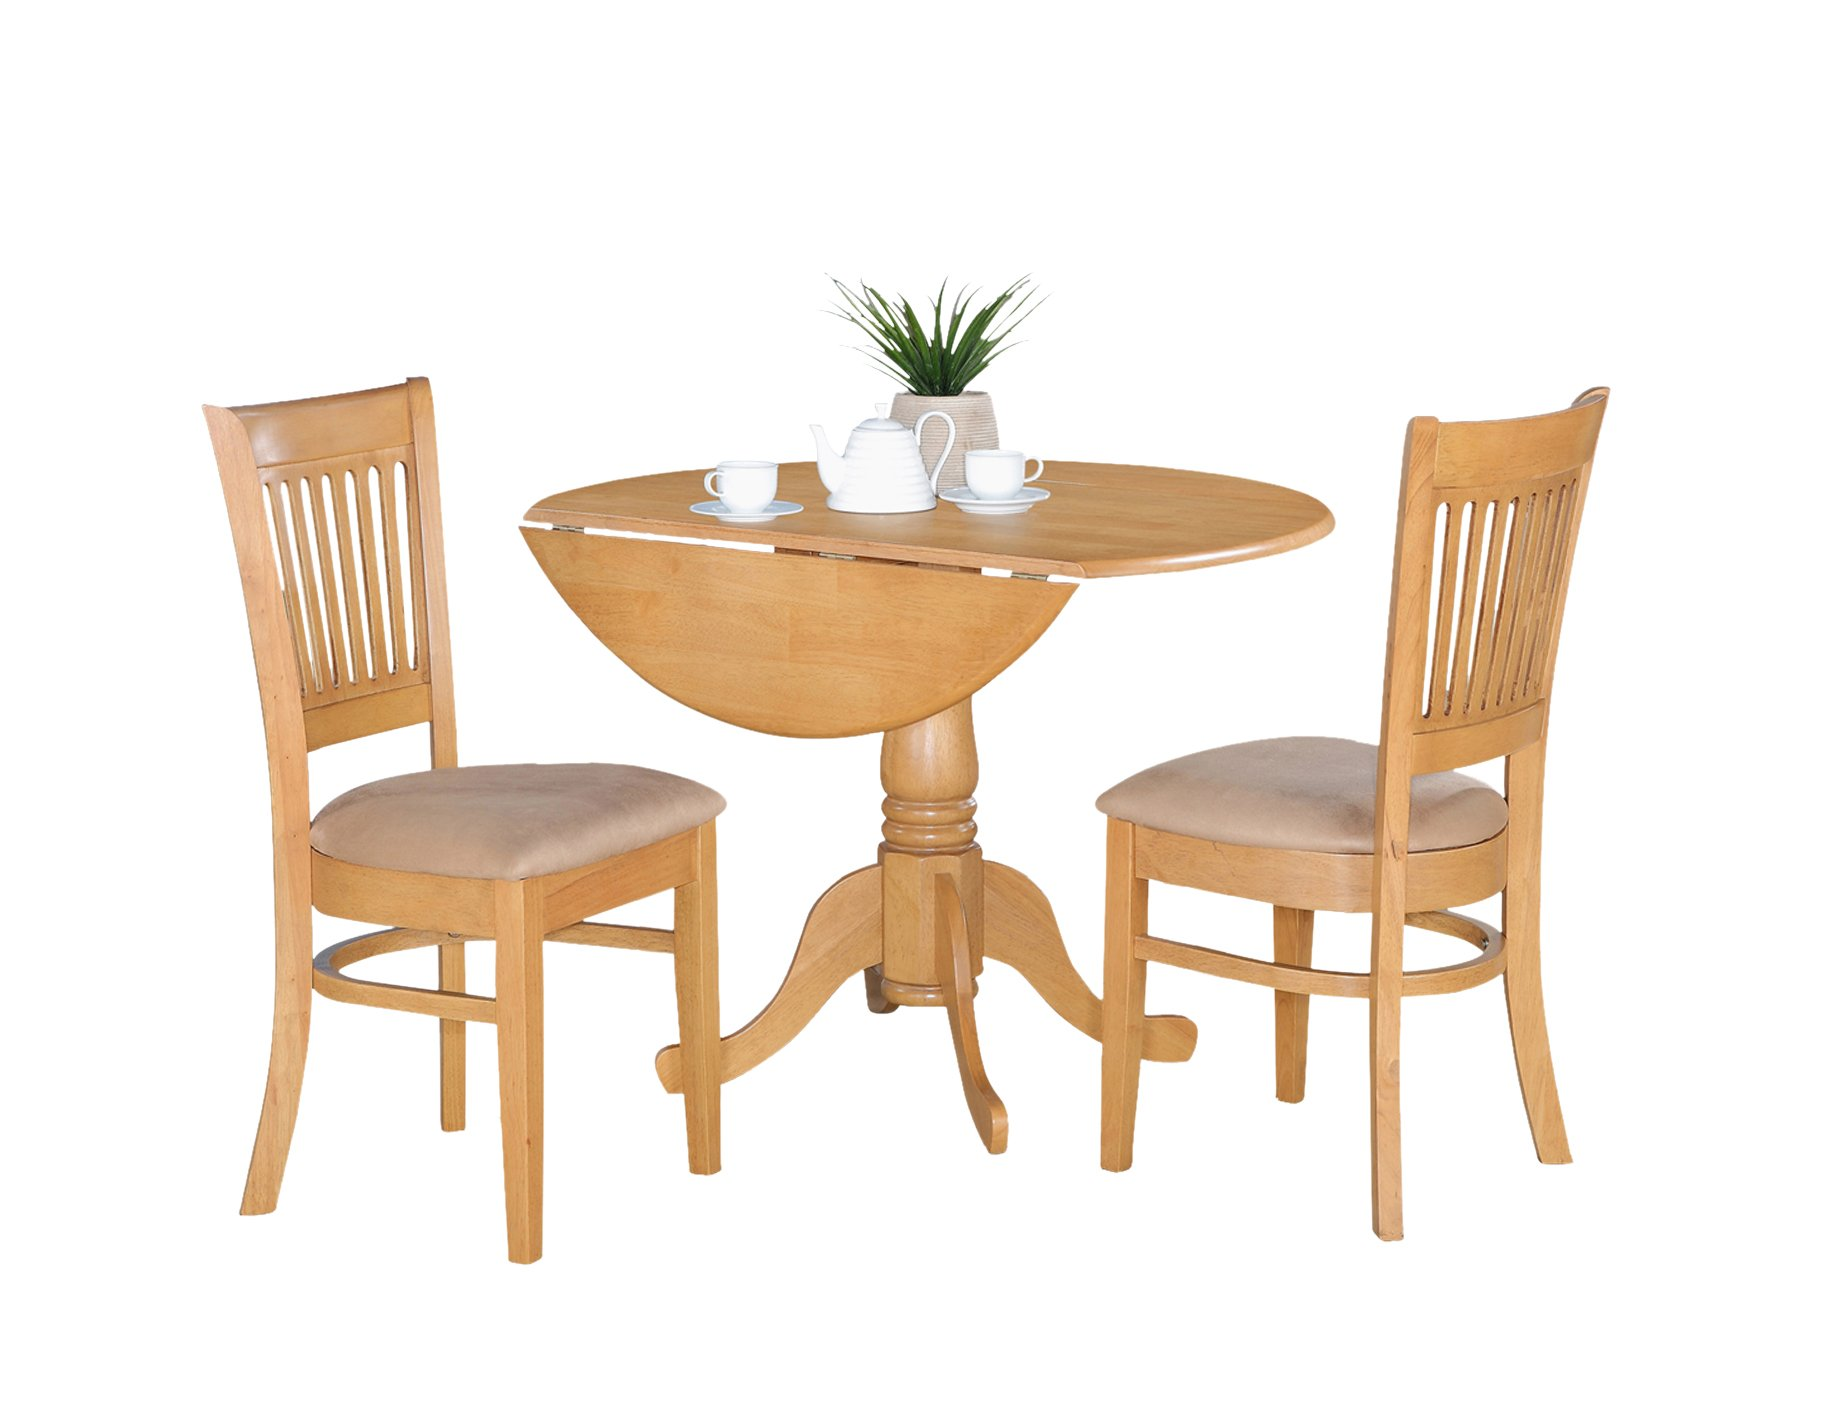 East West Furniture 3-Piece Kitchen Nook Dining Table Set, Oak Finish by East West Furniture